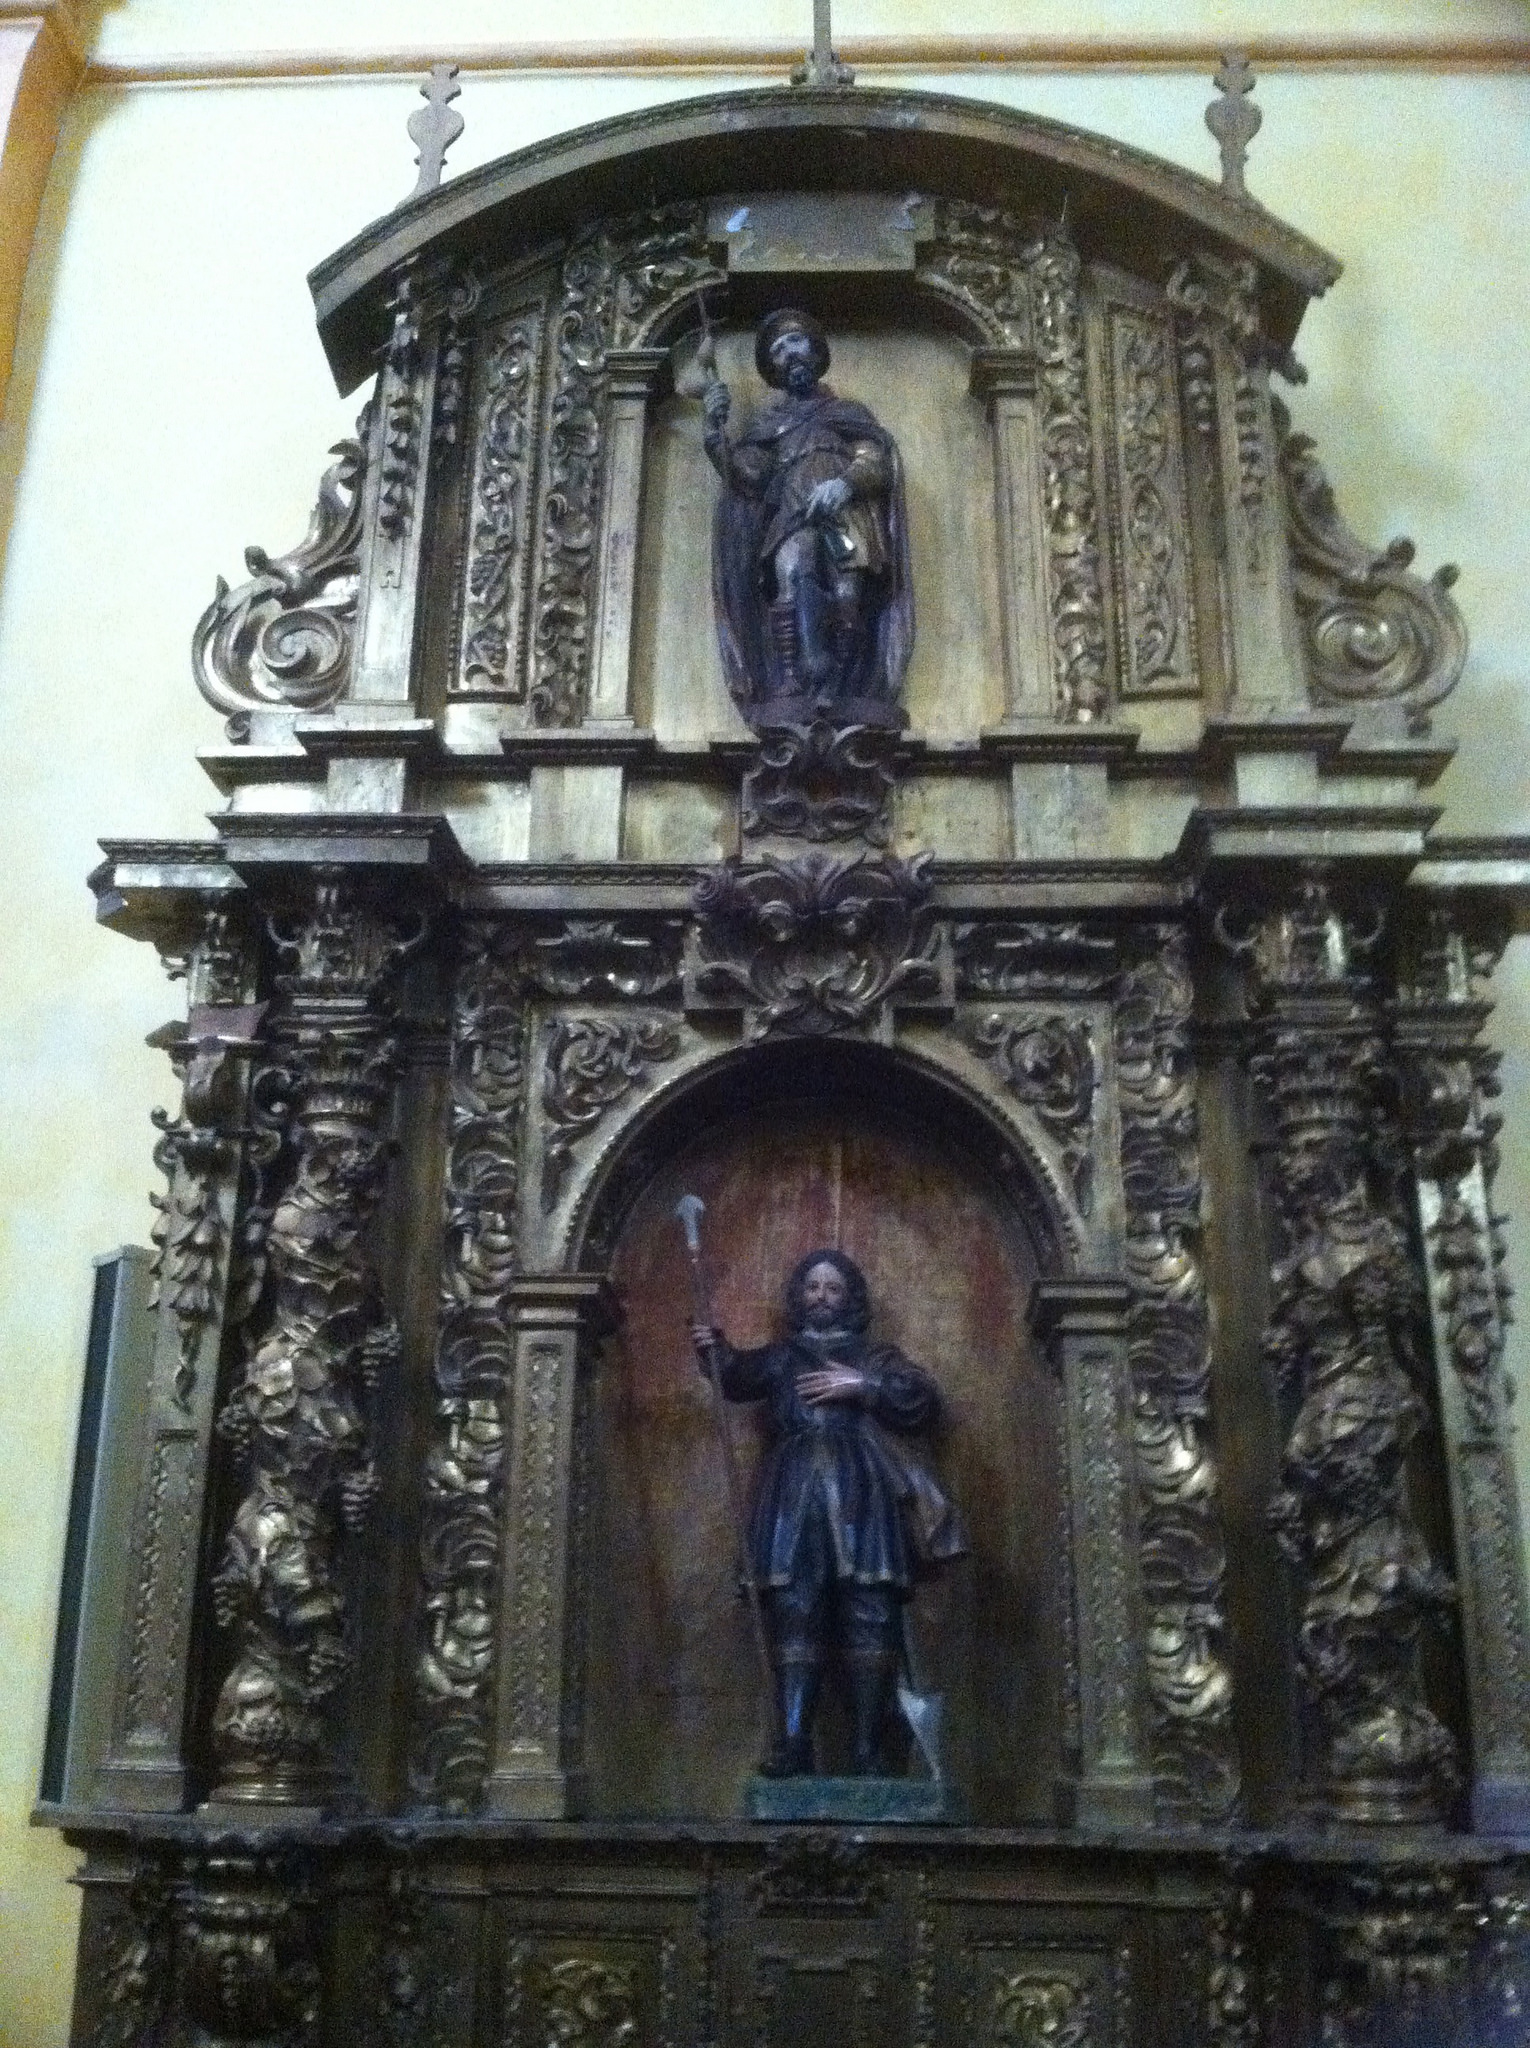 Altarpiece at the Church of San Juan Bautista